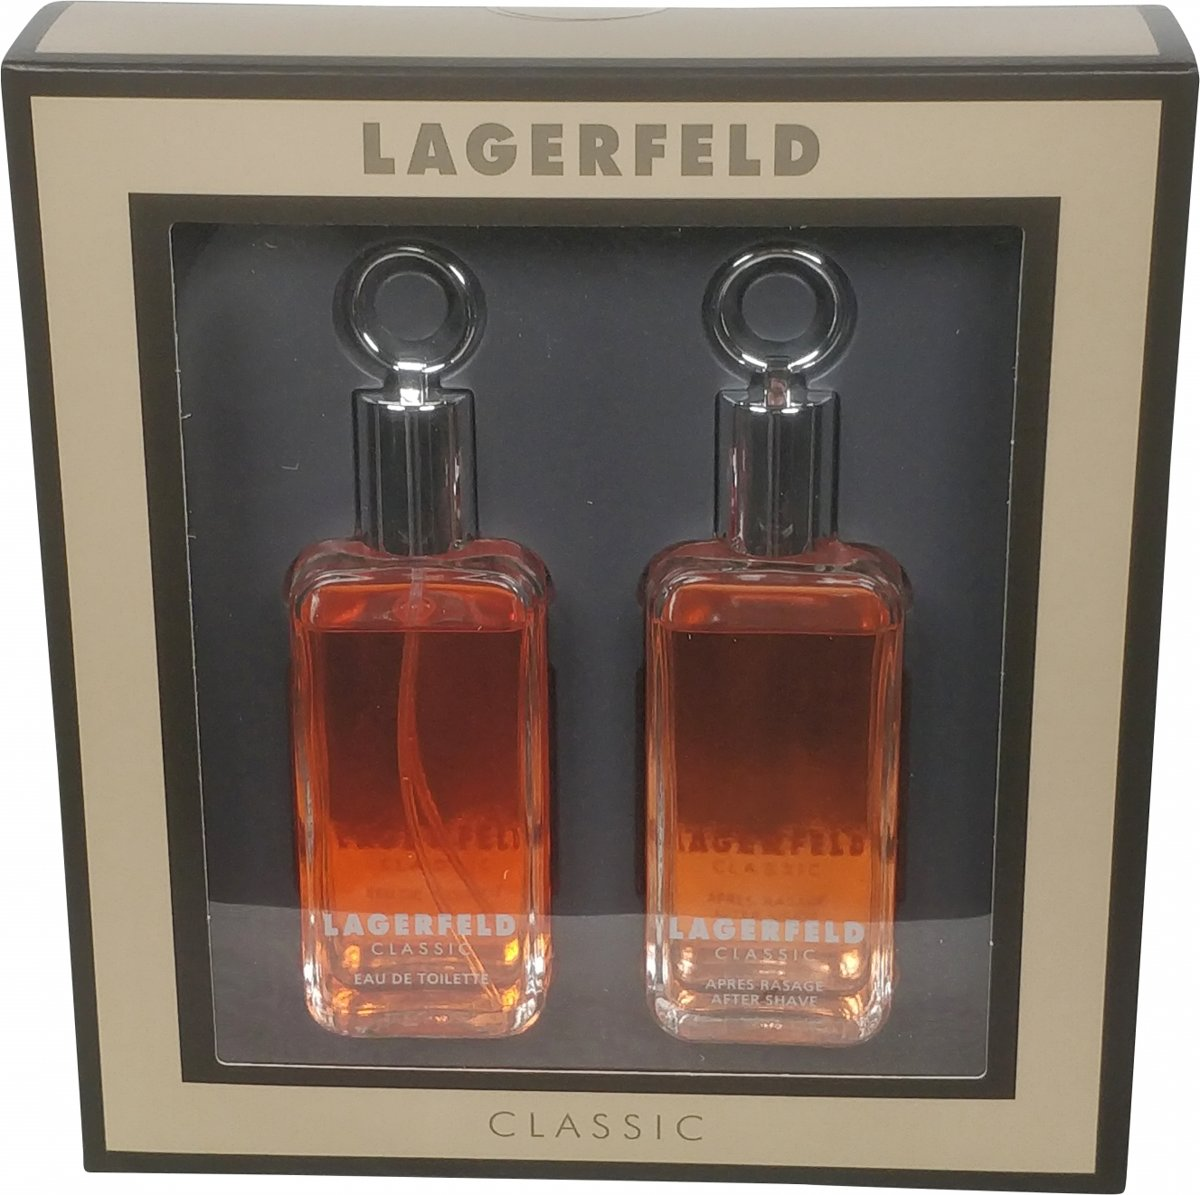 Lagerfeld - Eau de toilette - Classic 60ml eau de toilette + 60ml aftershave - Gifts ml